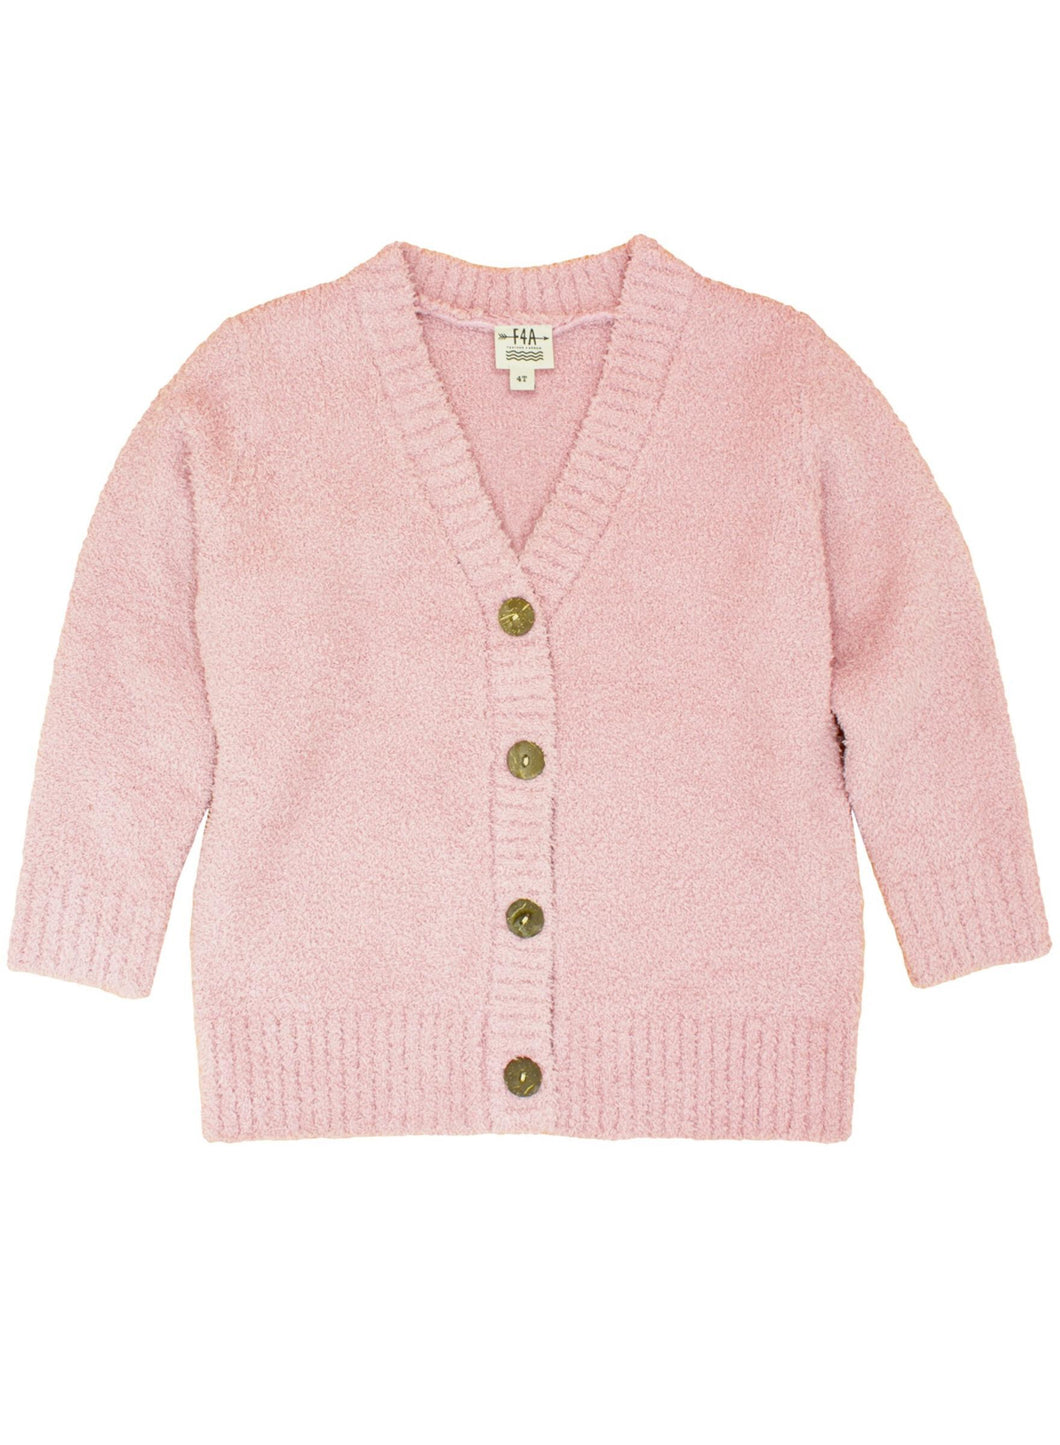 Demi Cardigan - Vintage Rose